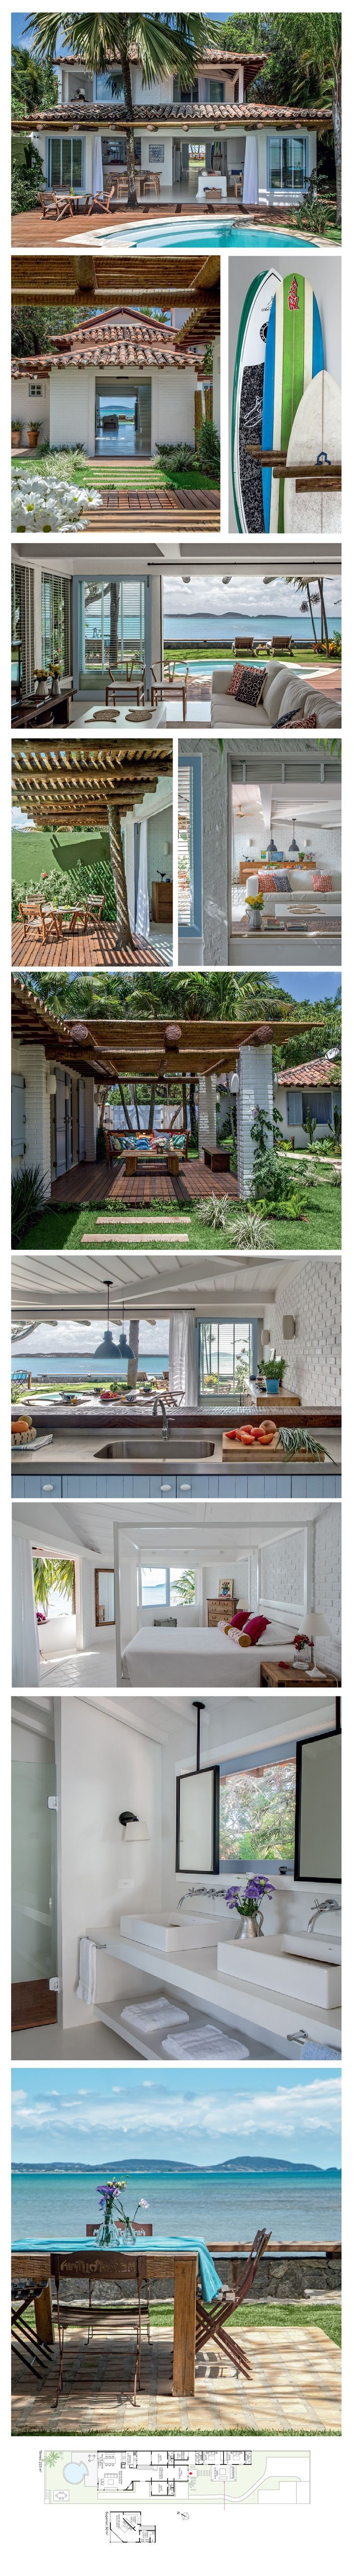 Anderson cooper s brazilian rest house is a vintage and rustic dream - The Interior Of The Beach House In Brazil Perfect Beach Living For Me